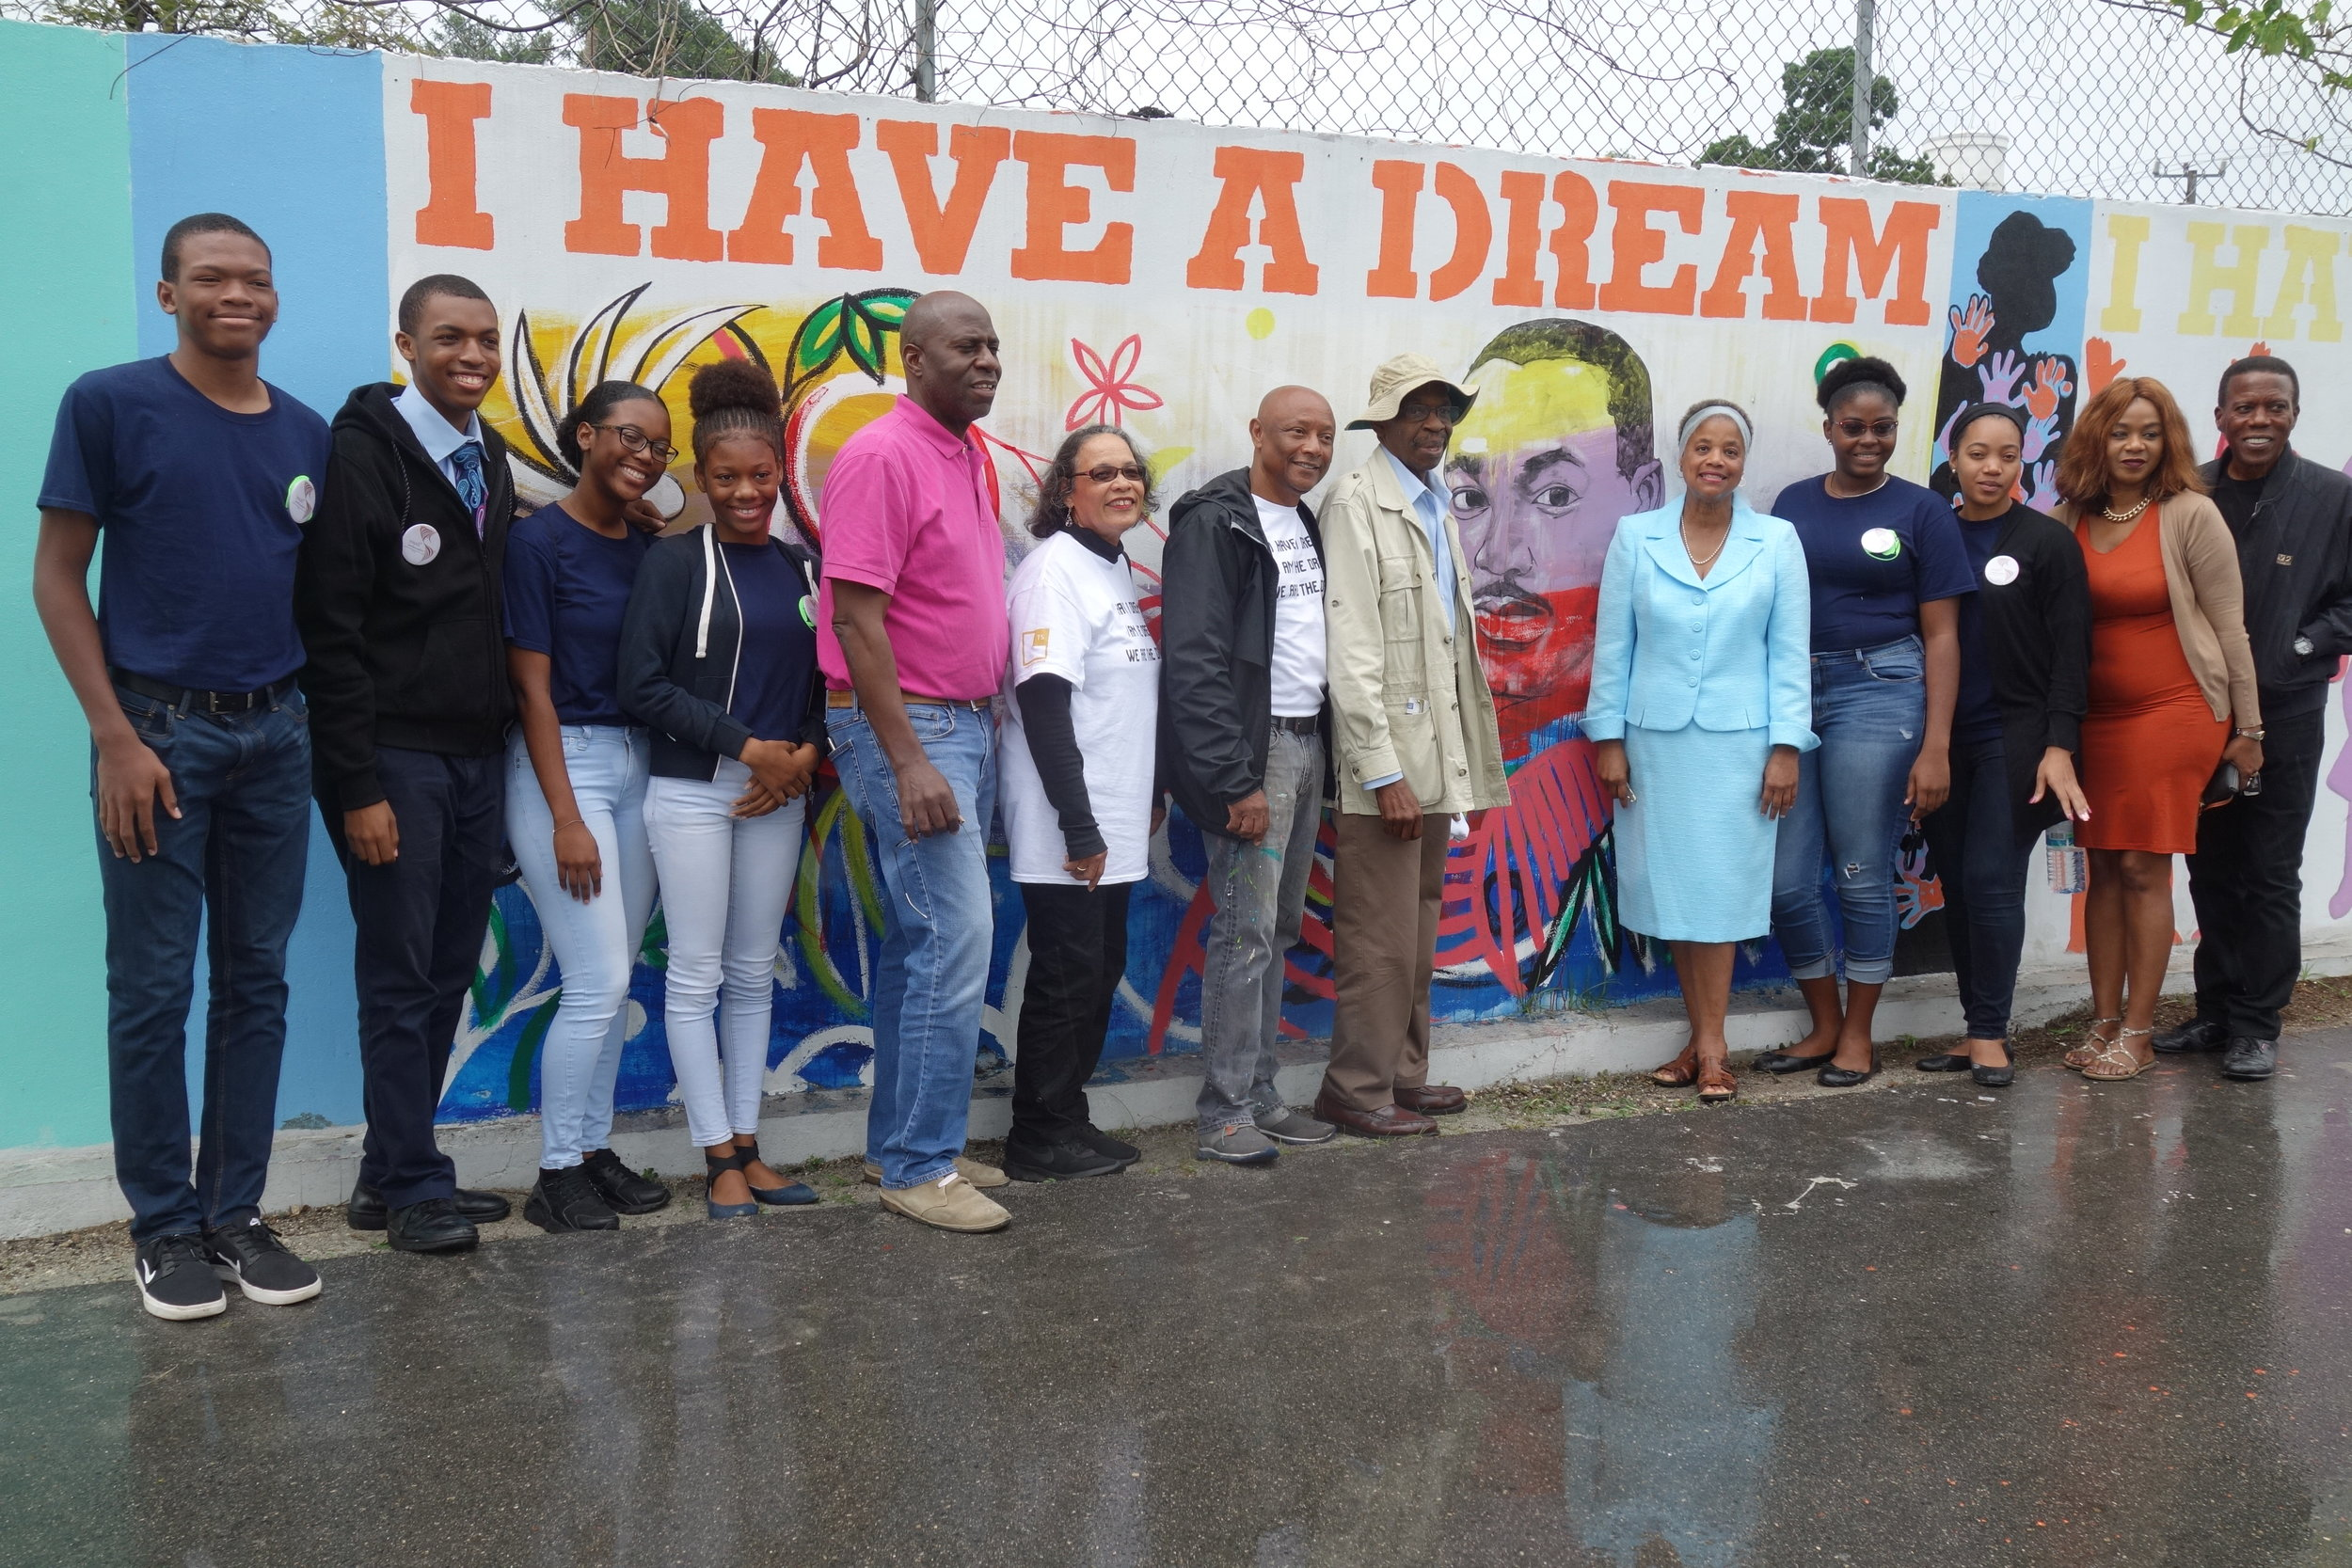 The LAHB and TS teams pose with Rosalie Fawkes in front of the MLK mural by Jodi Minnis. Photography courtesy of Dede Brown.